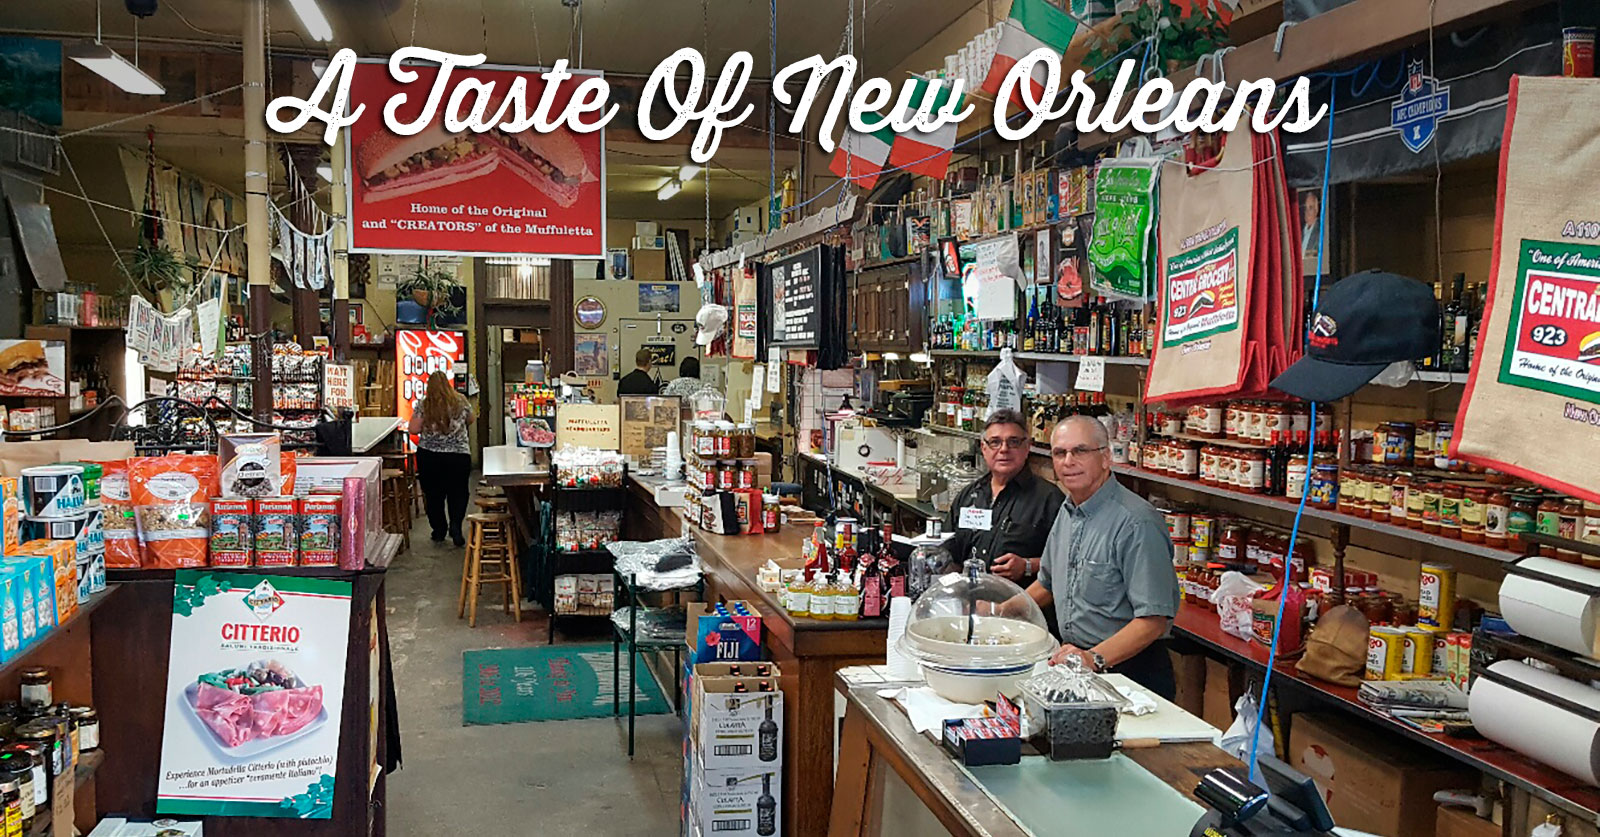 Central Grocery – New Orleans – Louisiana